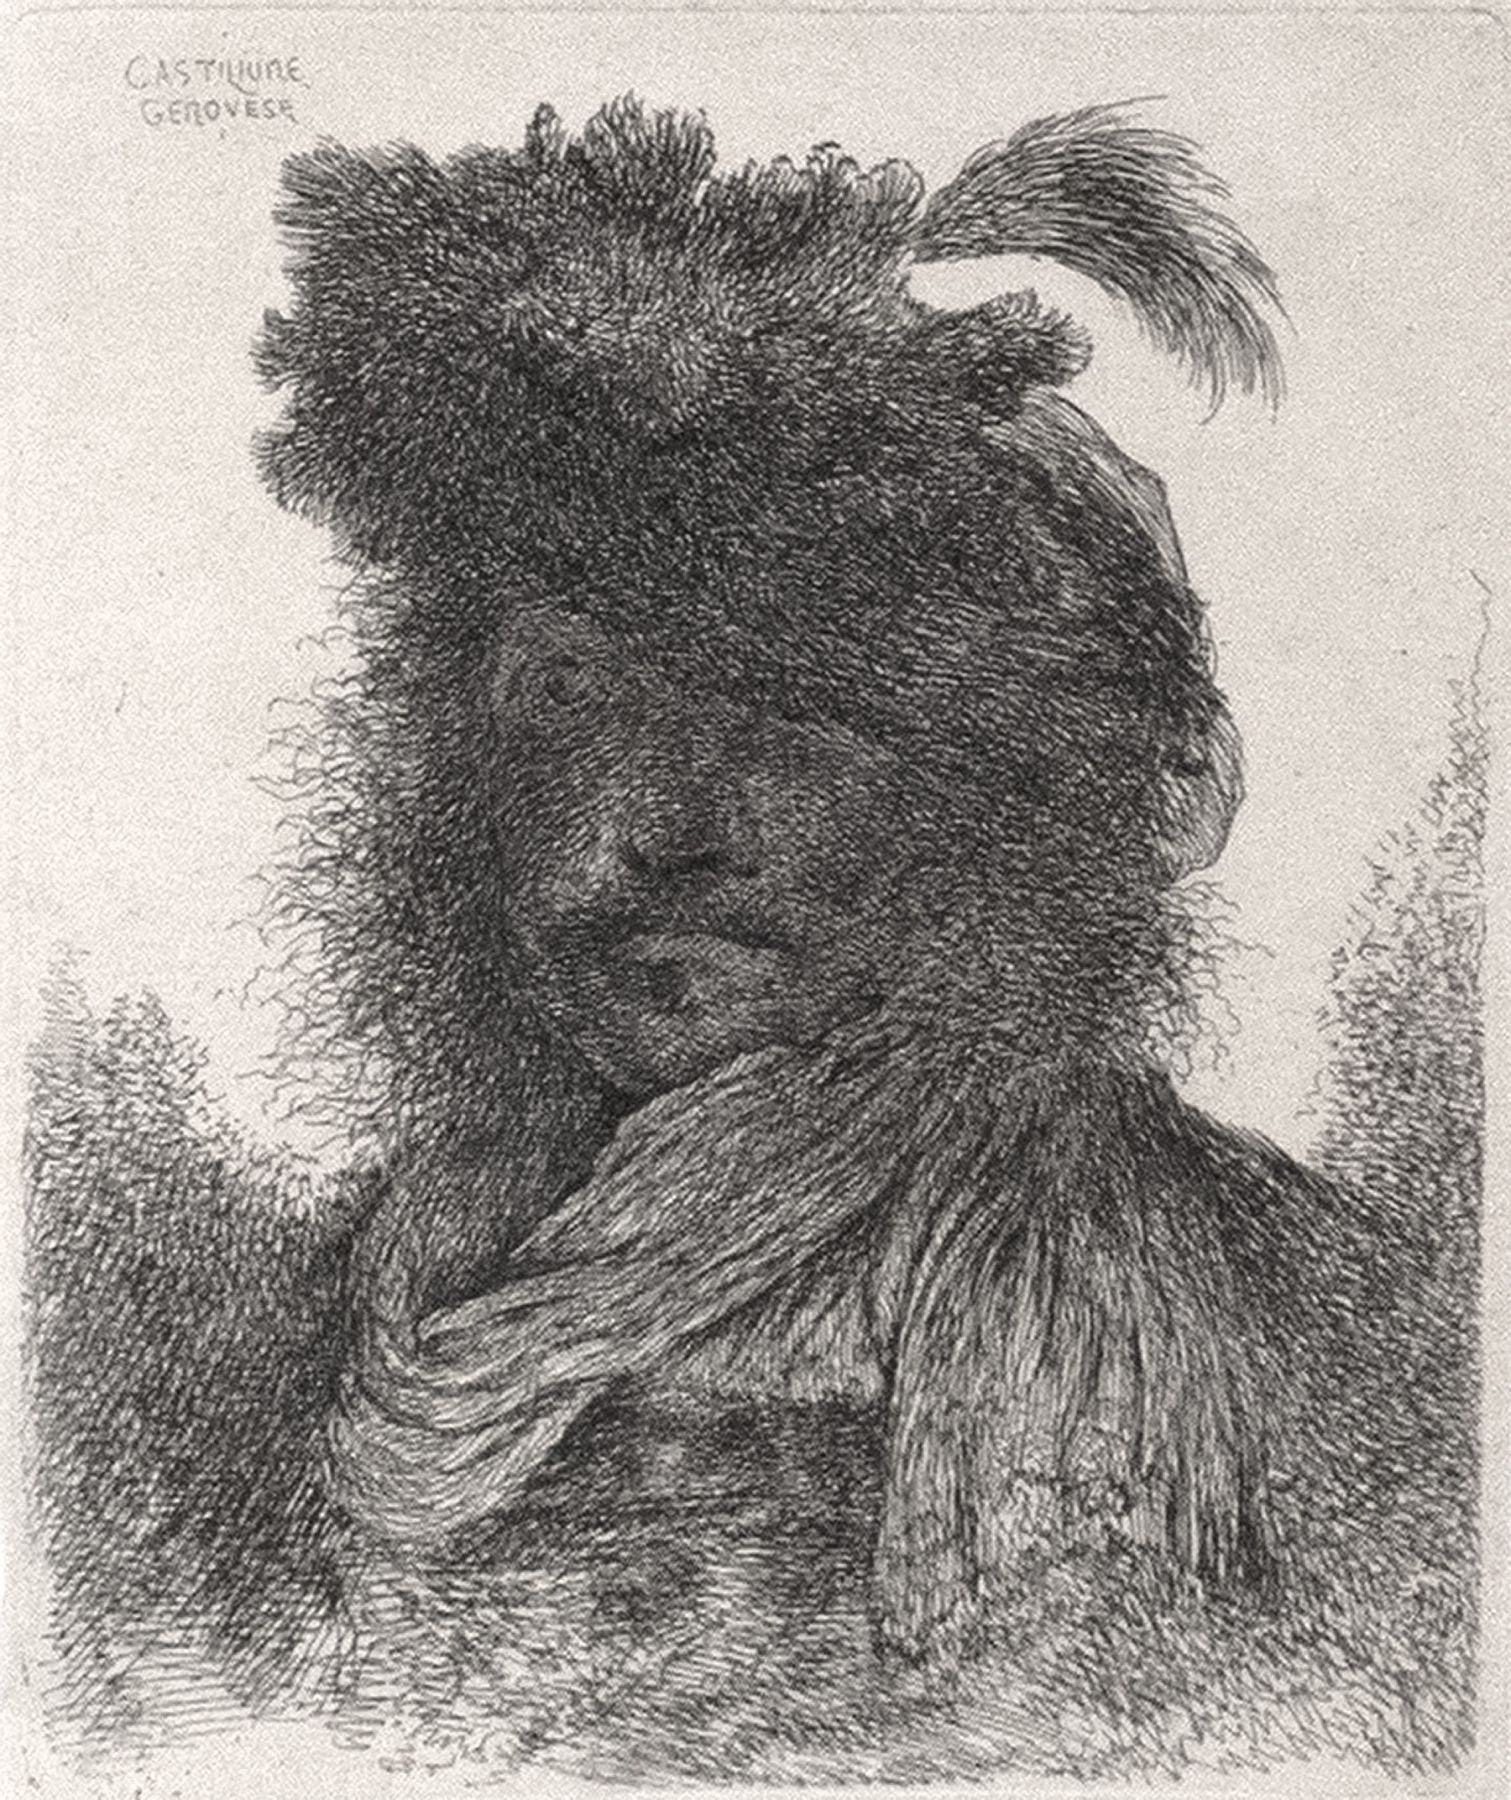 Bearded Man with Shadowed Face